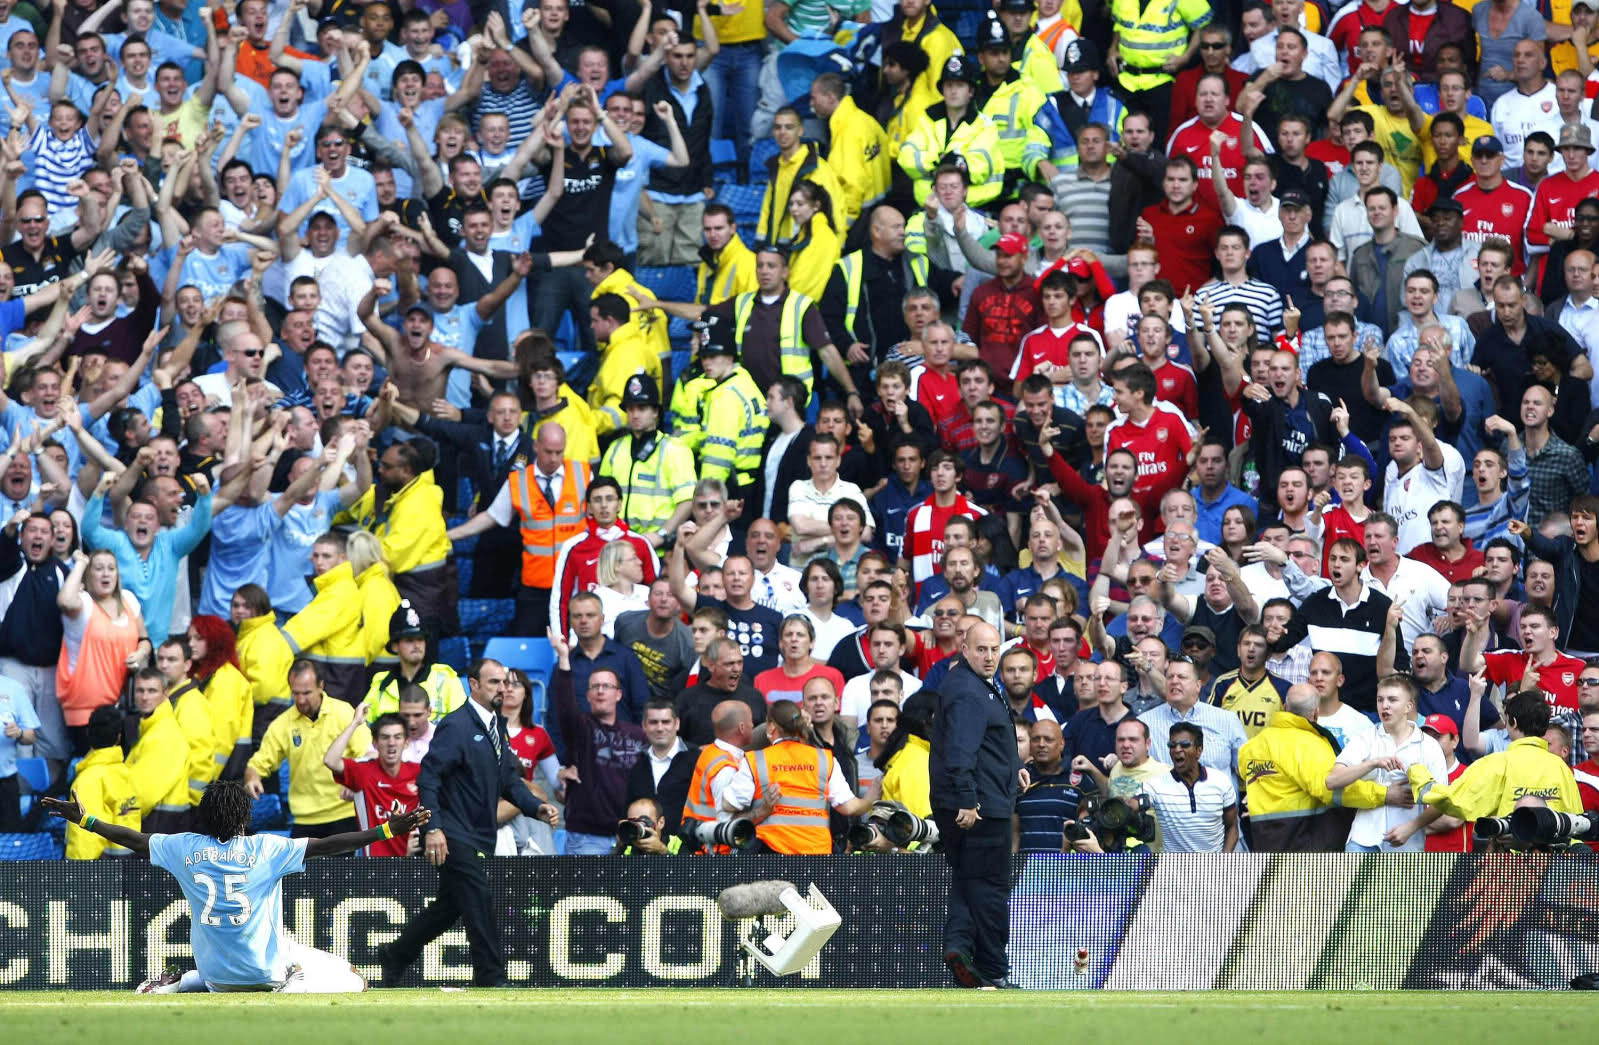 adebayor celebration | Pallomeri.net